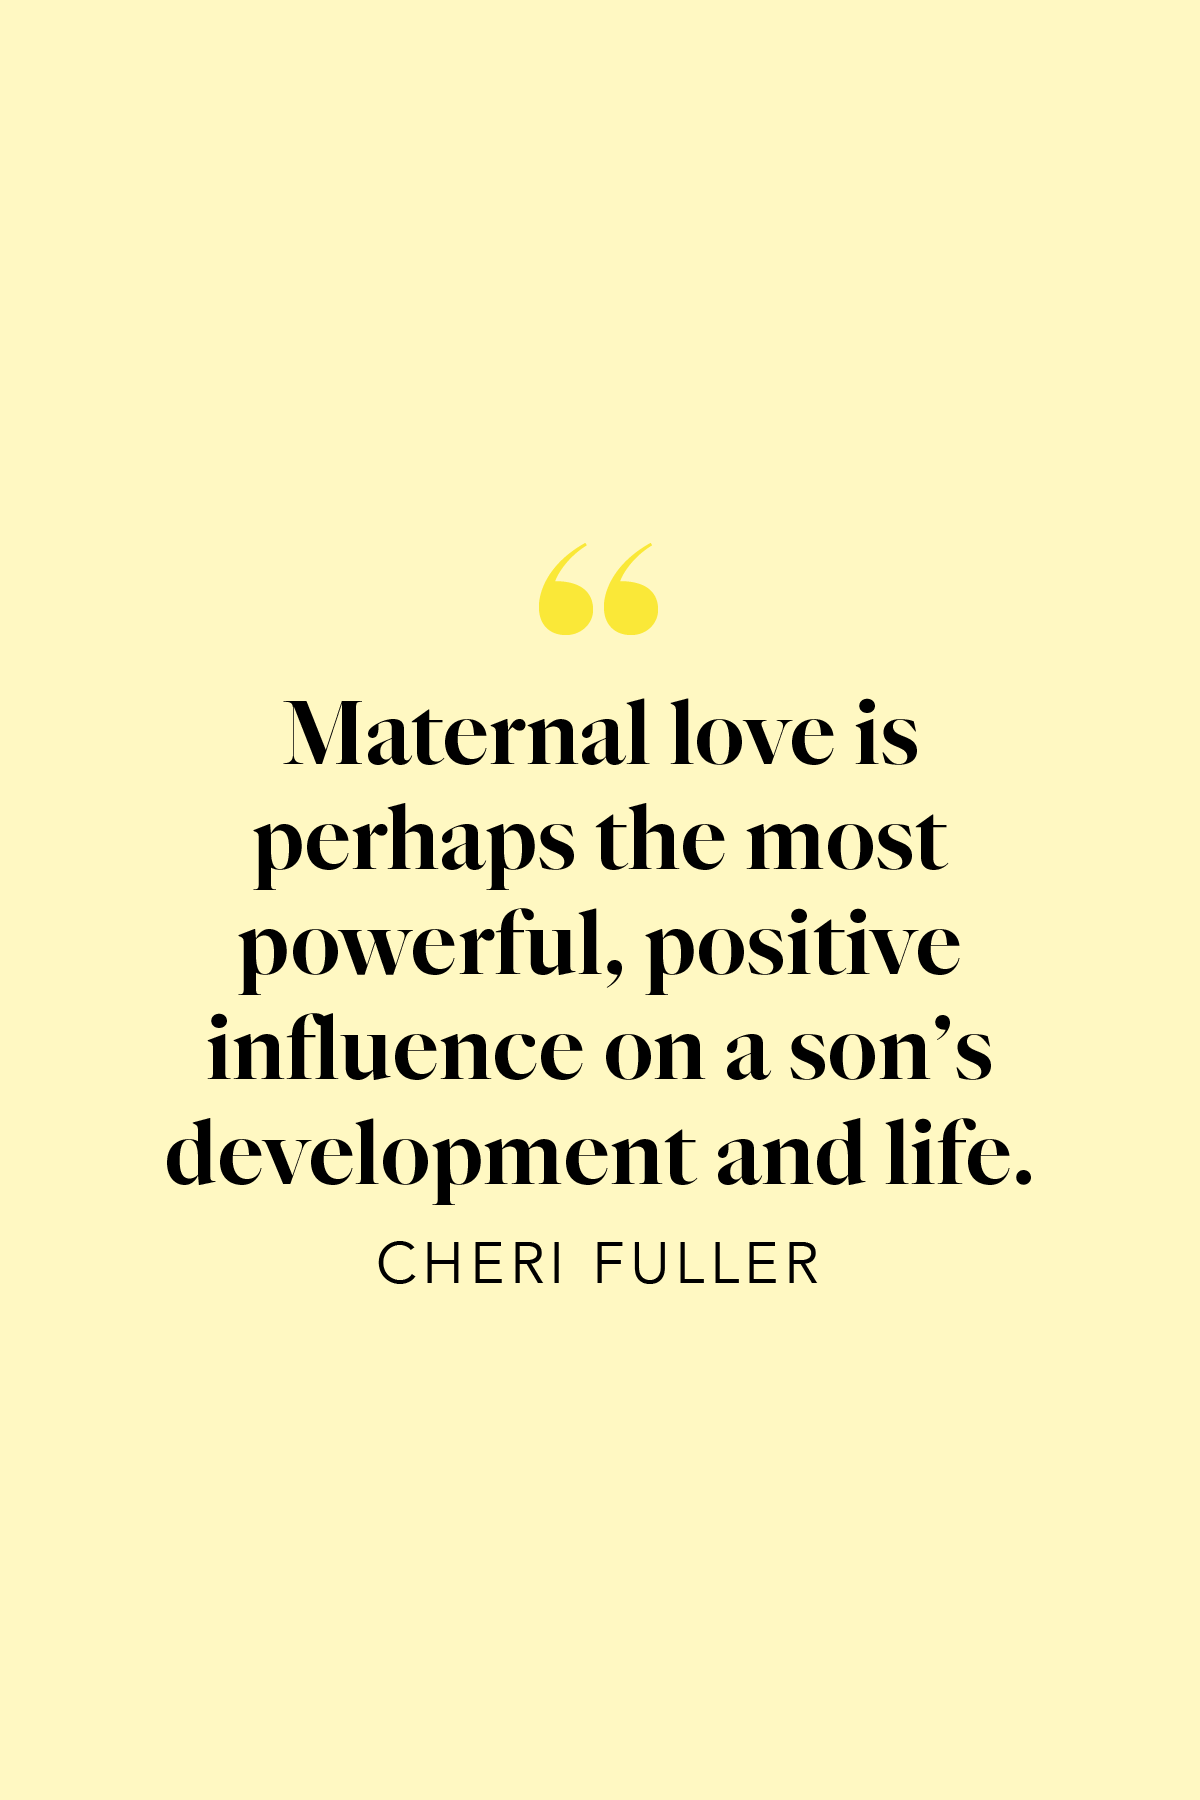 77 Quotes about Mother's Love for Her Son and Daughter